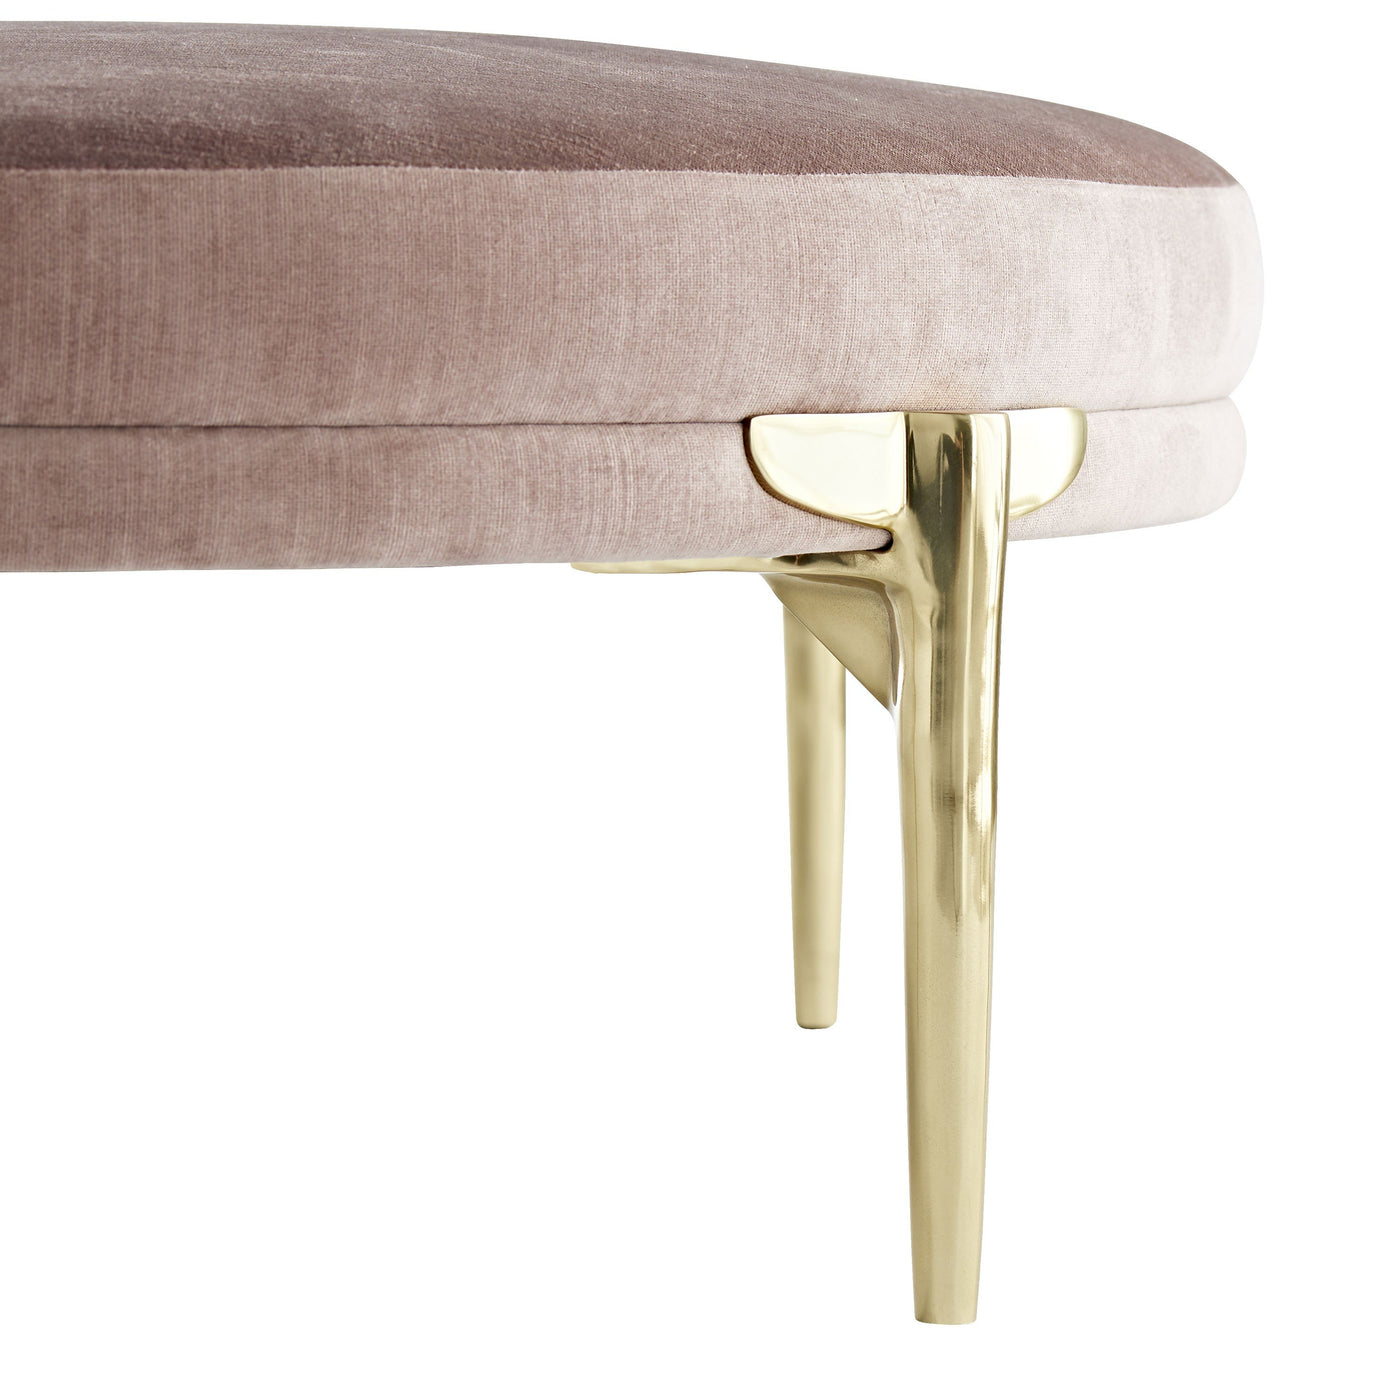 arteriors Andrea round Ottoman brushed brass leg detail